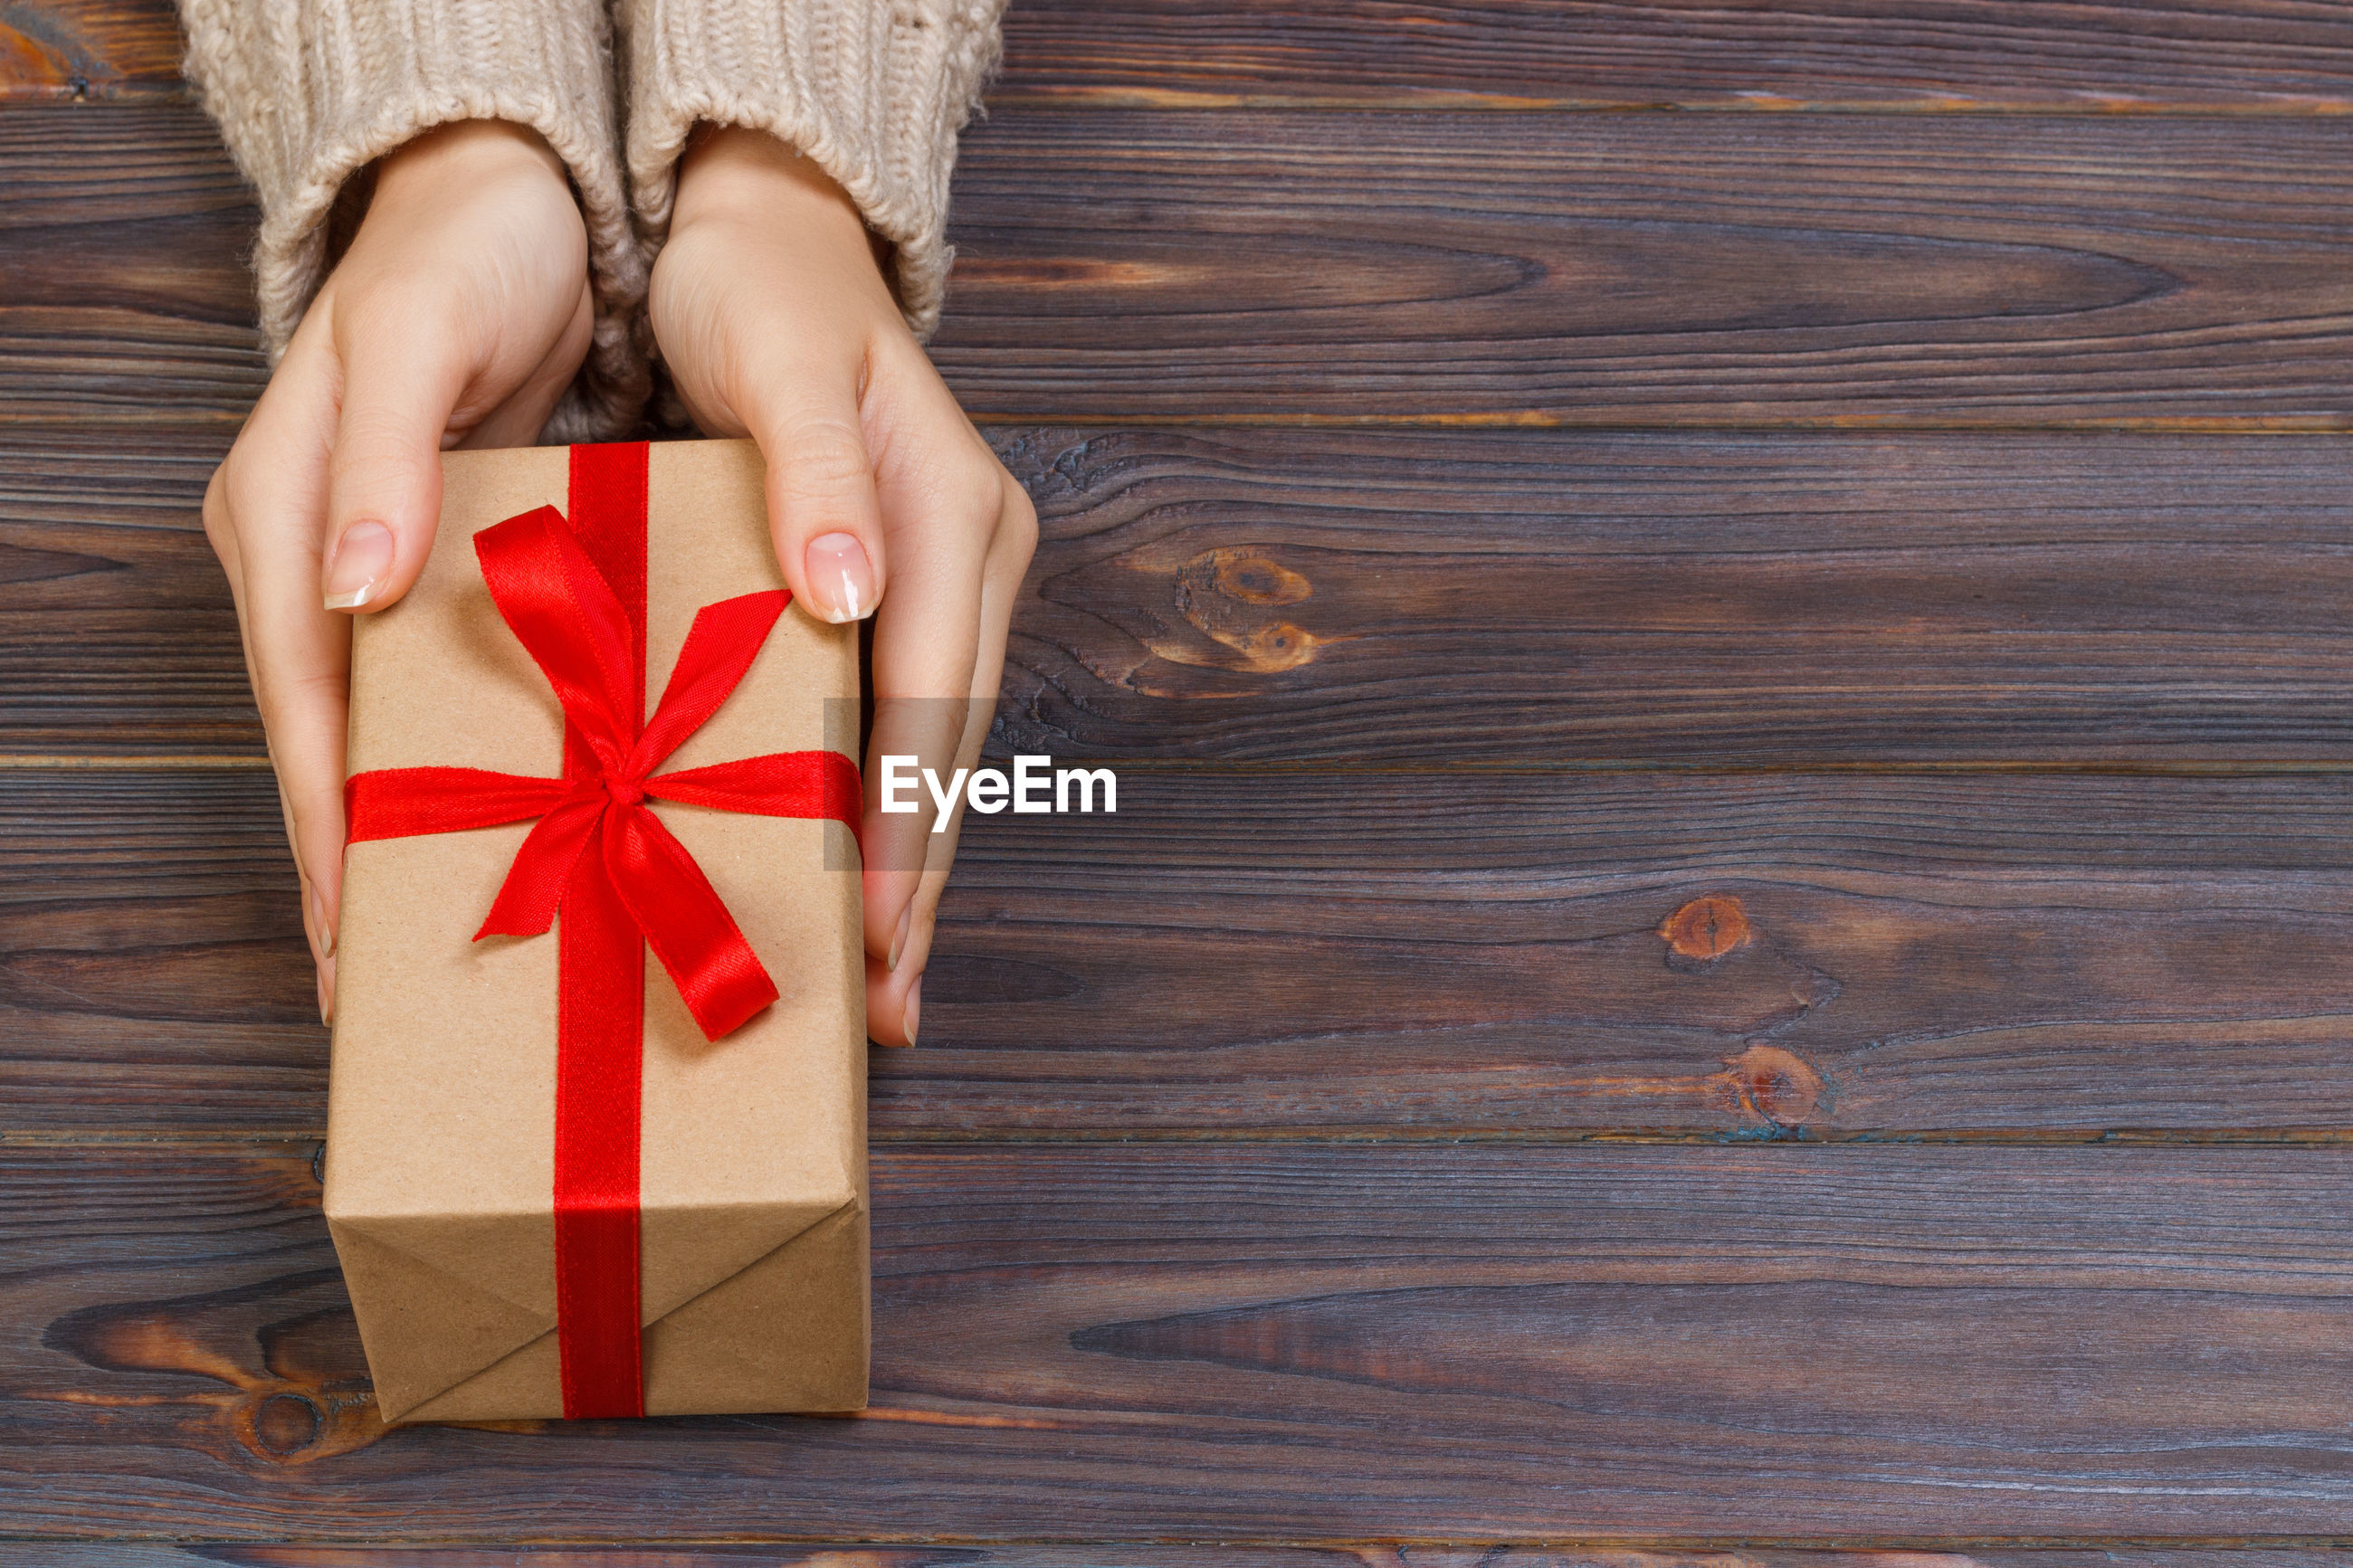 Cropped hands of woman holding gift box on table